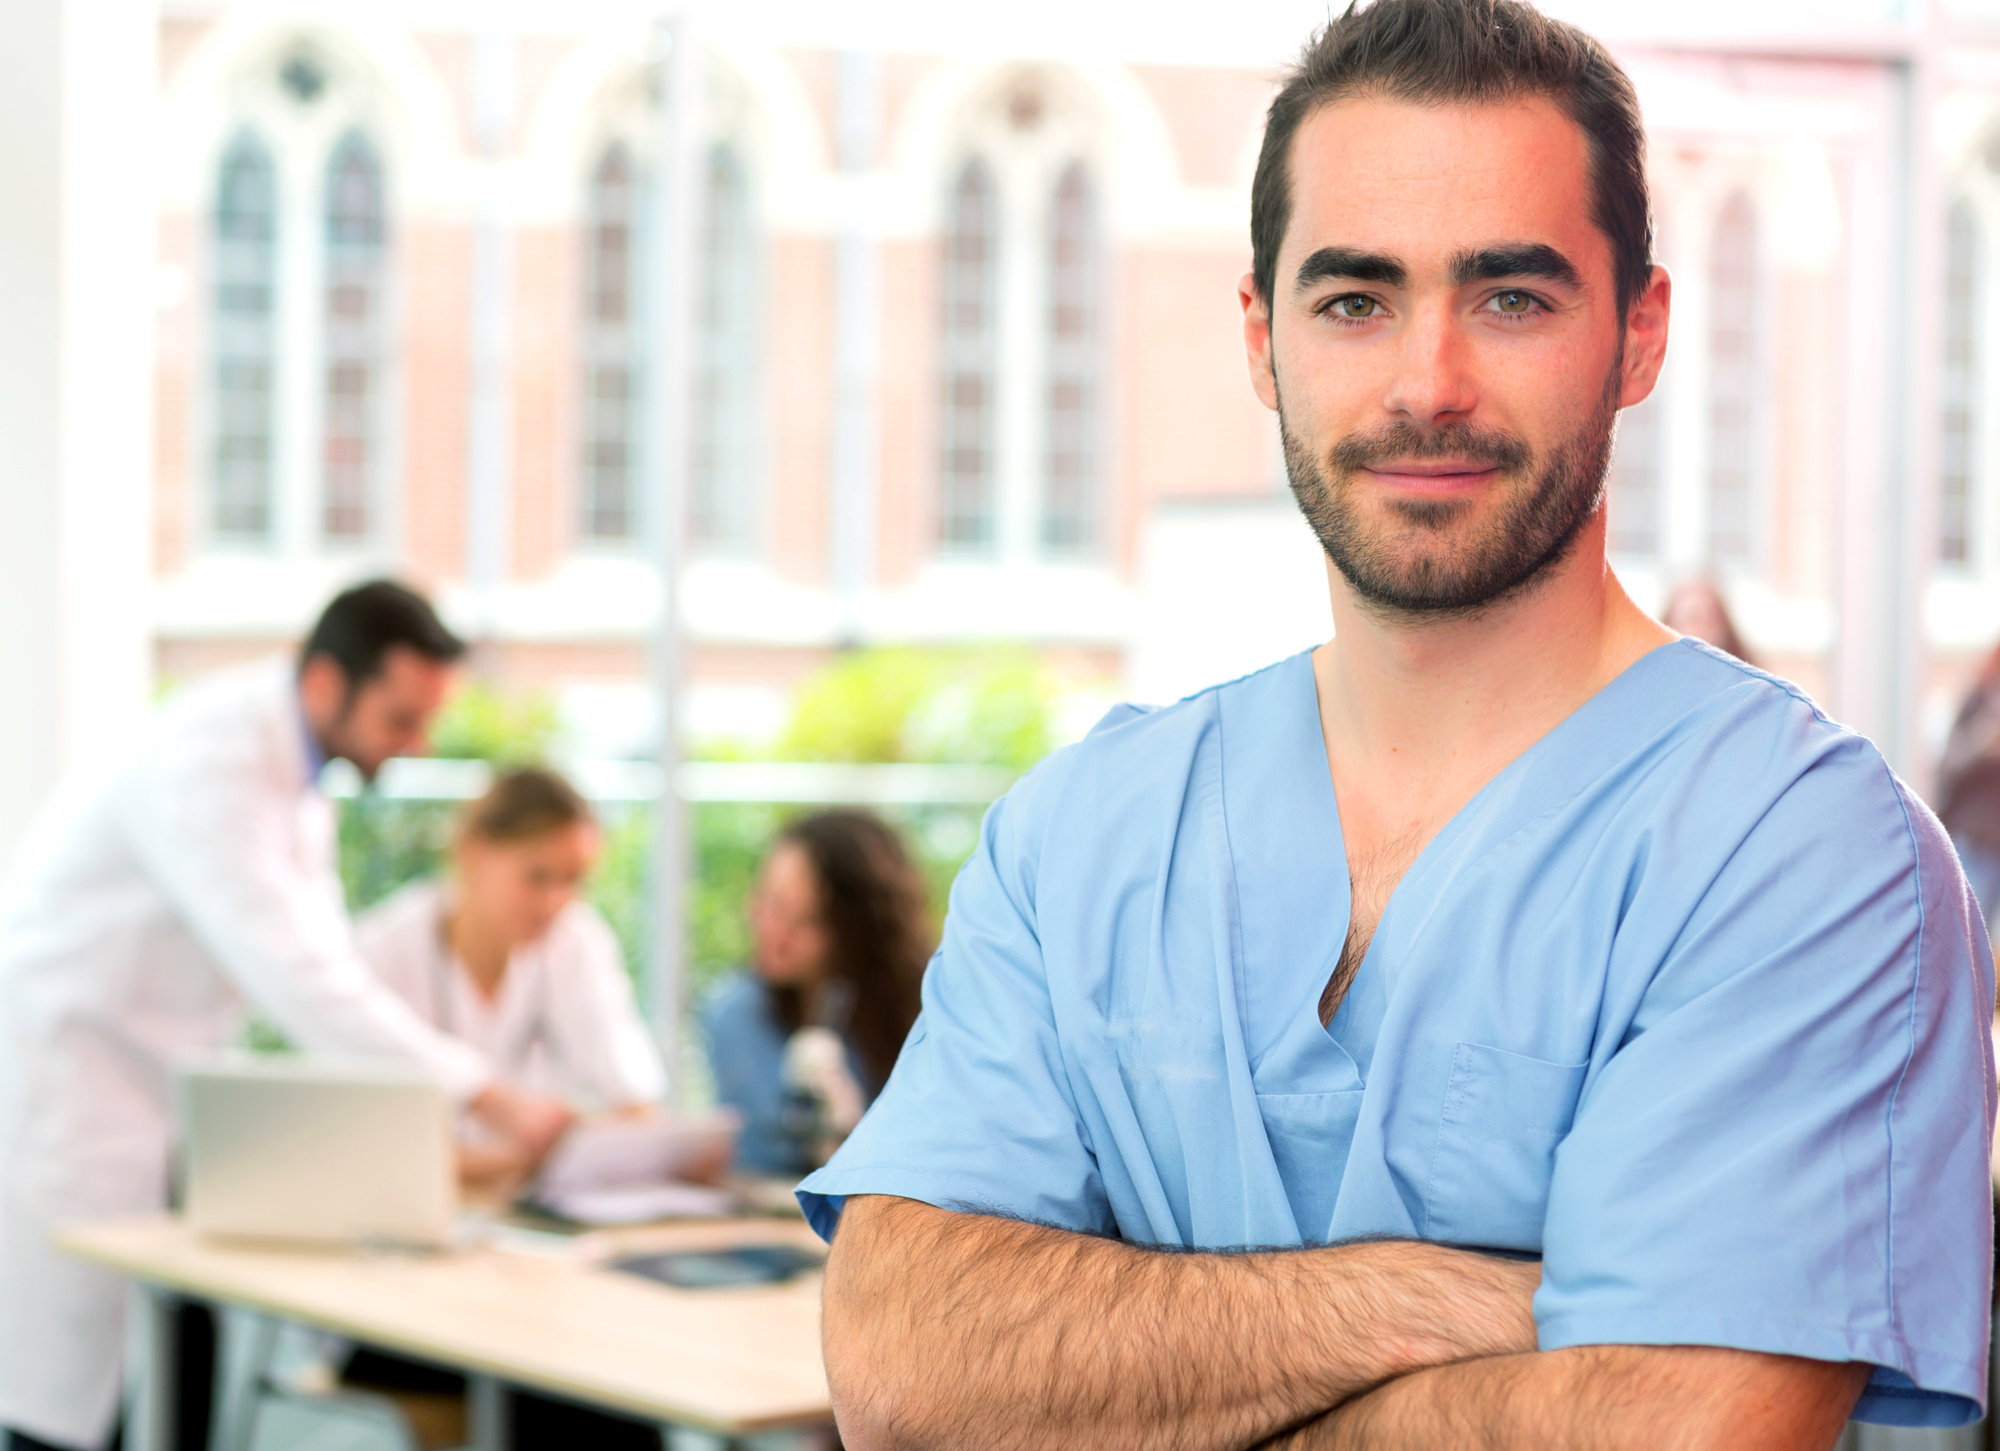 How to Find a Pain Management Doctor in Arizona